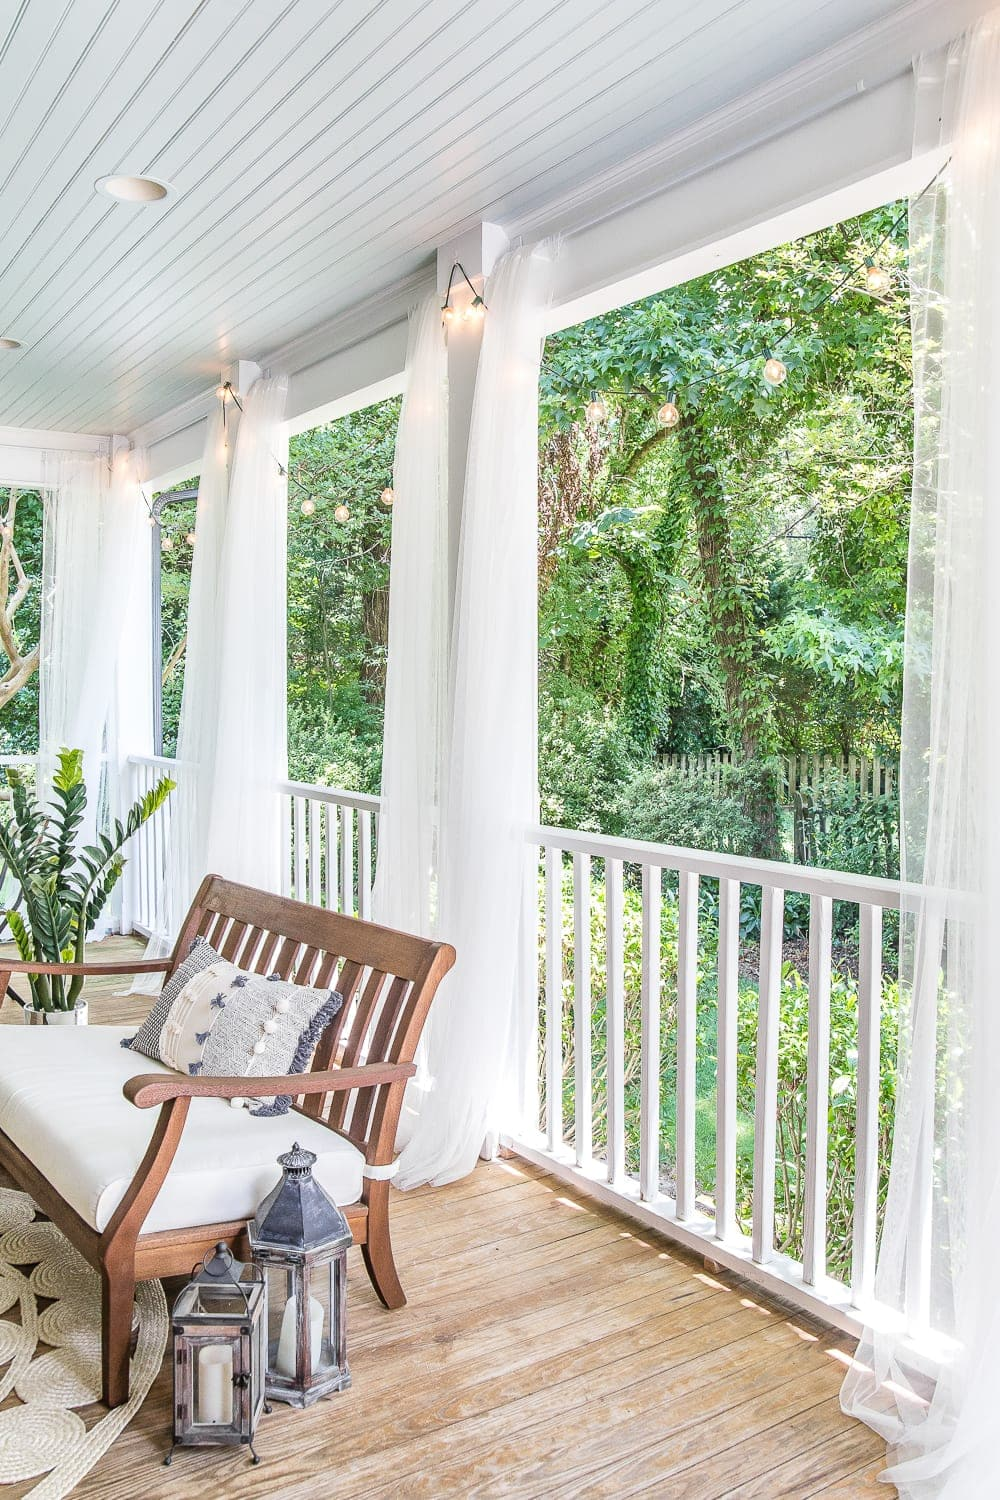 Diy Outdoor Curtains And Screened Porch For Under 100 Bless Er House